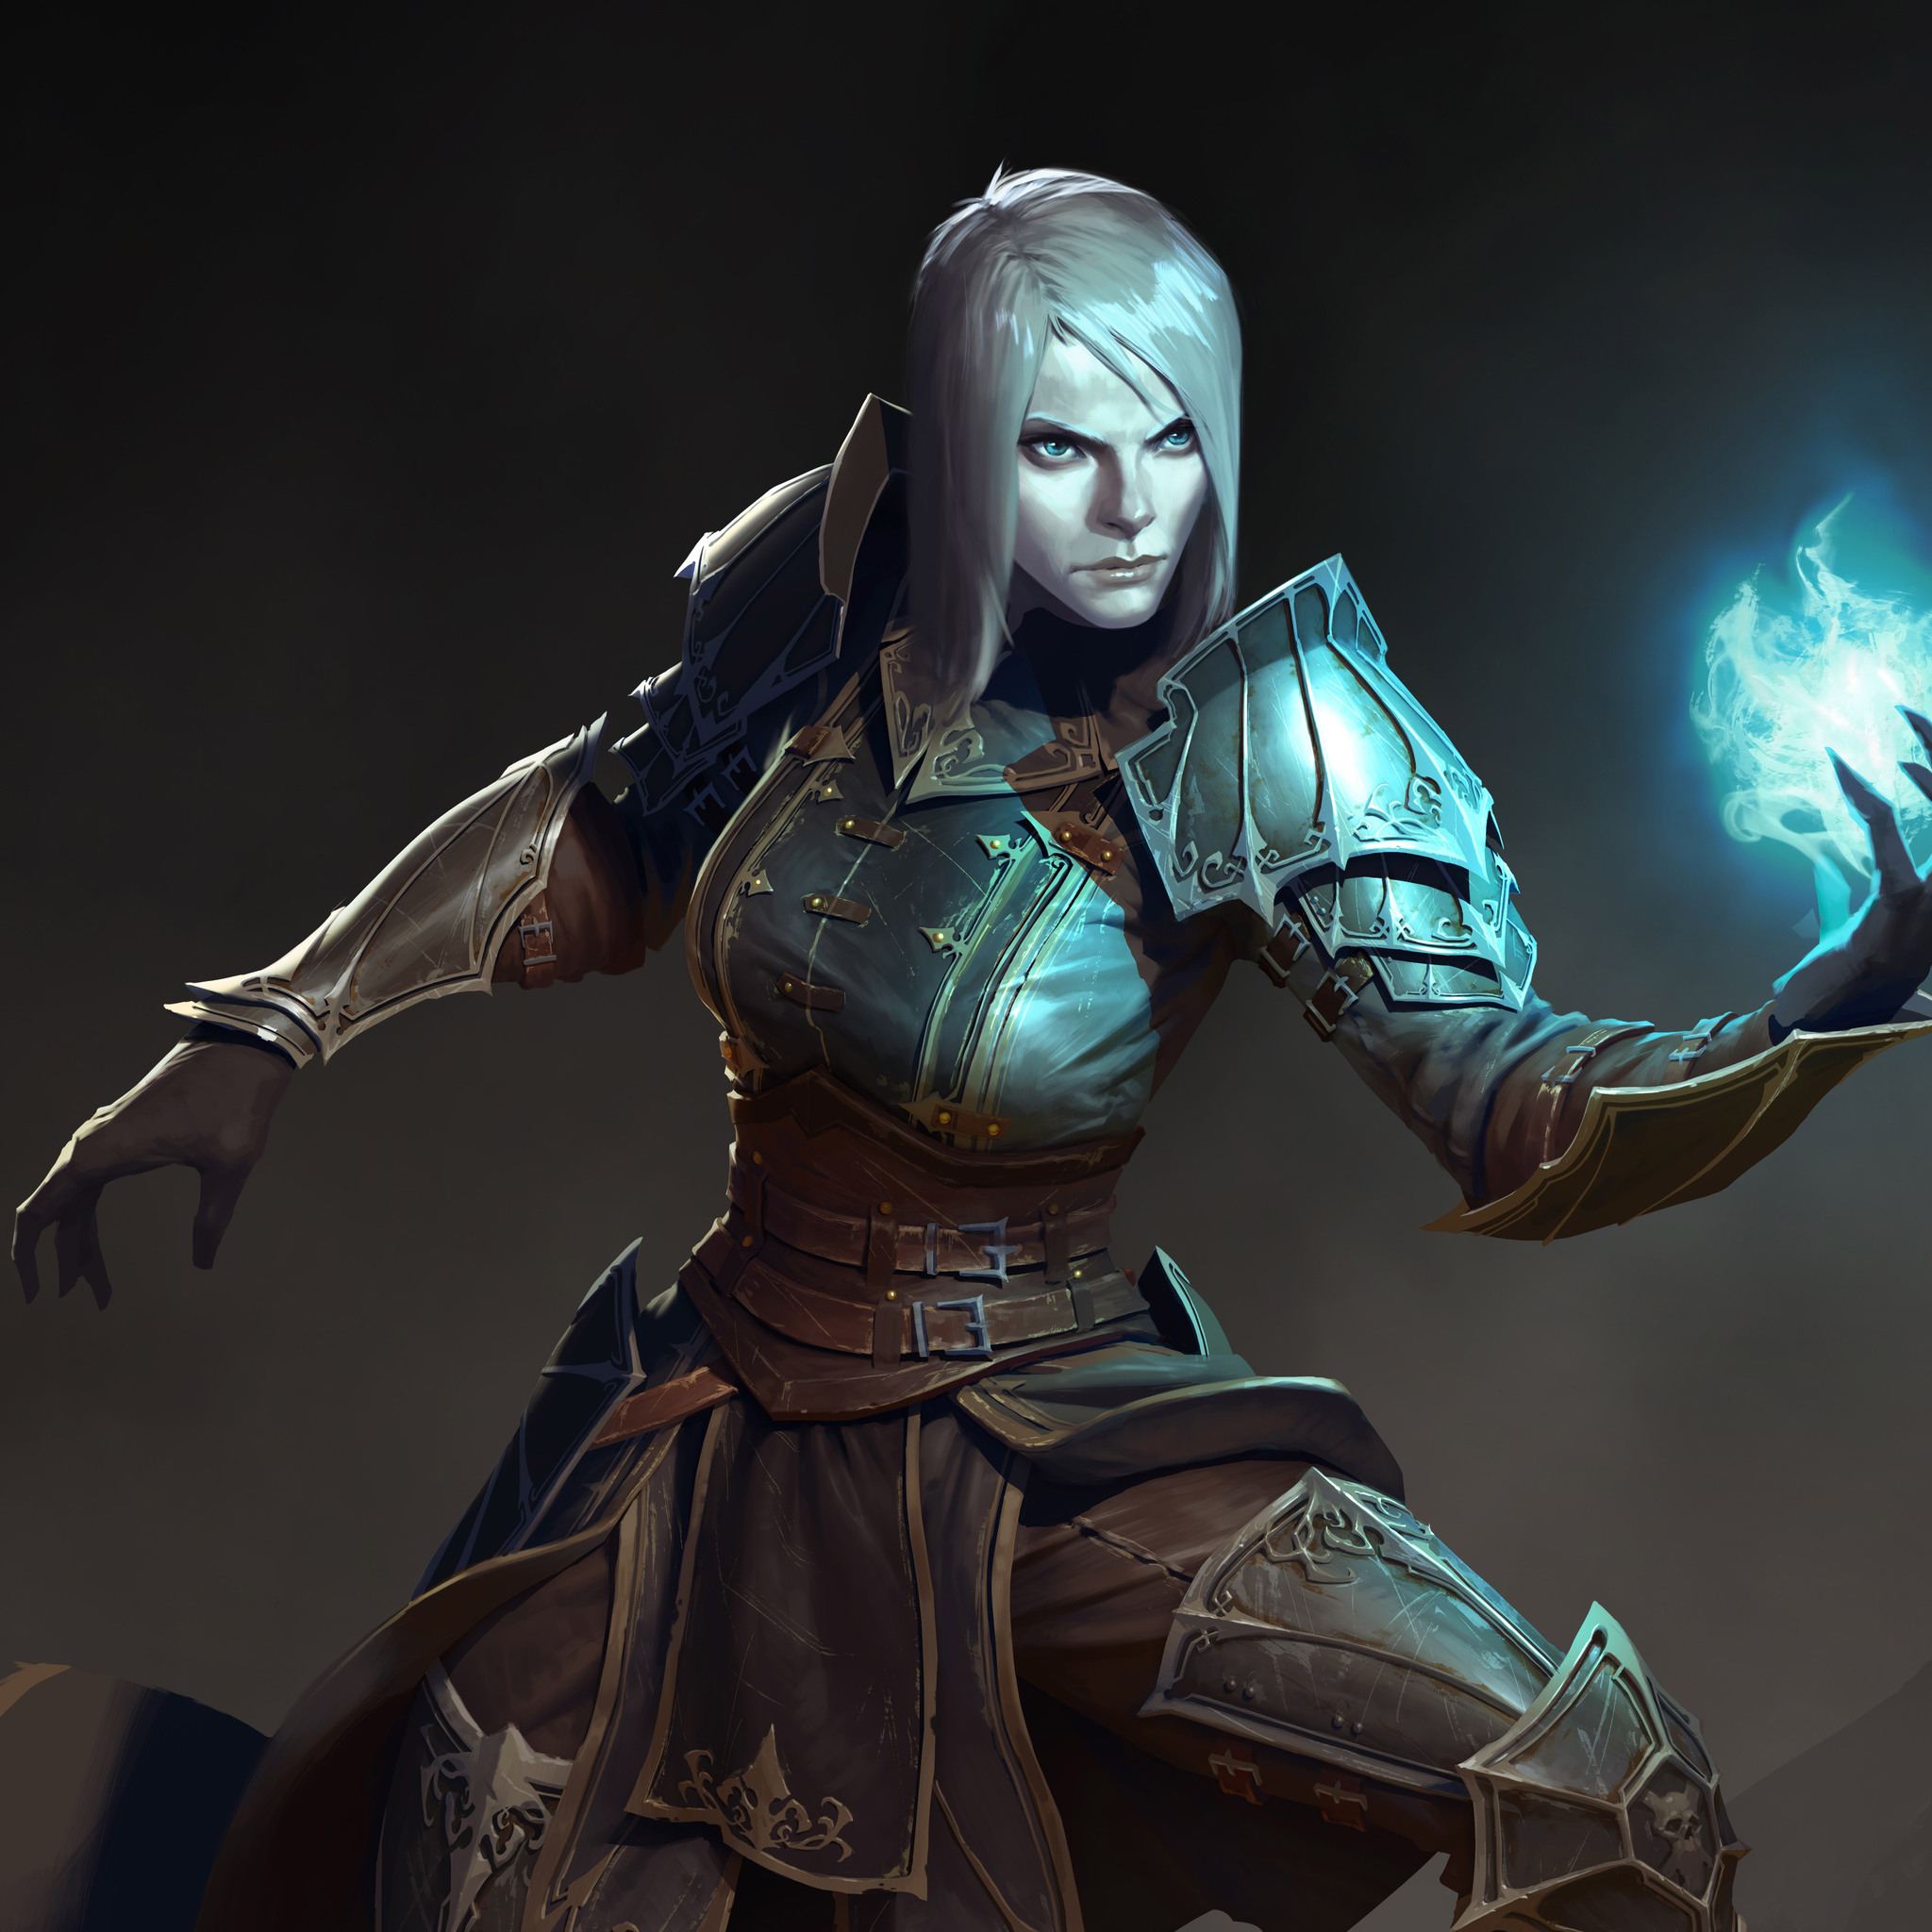 Diablo 3 Wallpaper 1920x1080: 2048x2048 Female Necromancer Diablo III Ipad Air HD 4k